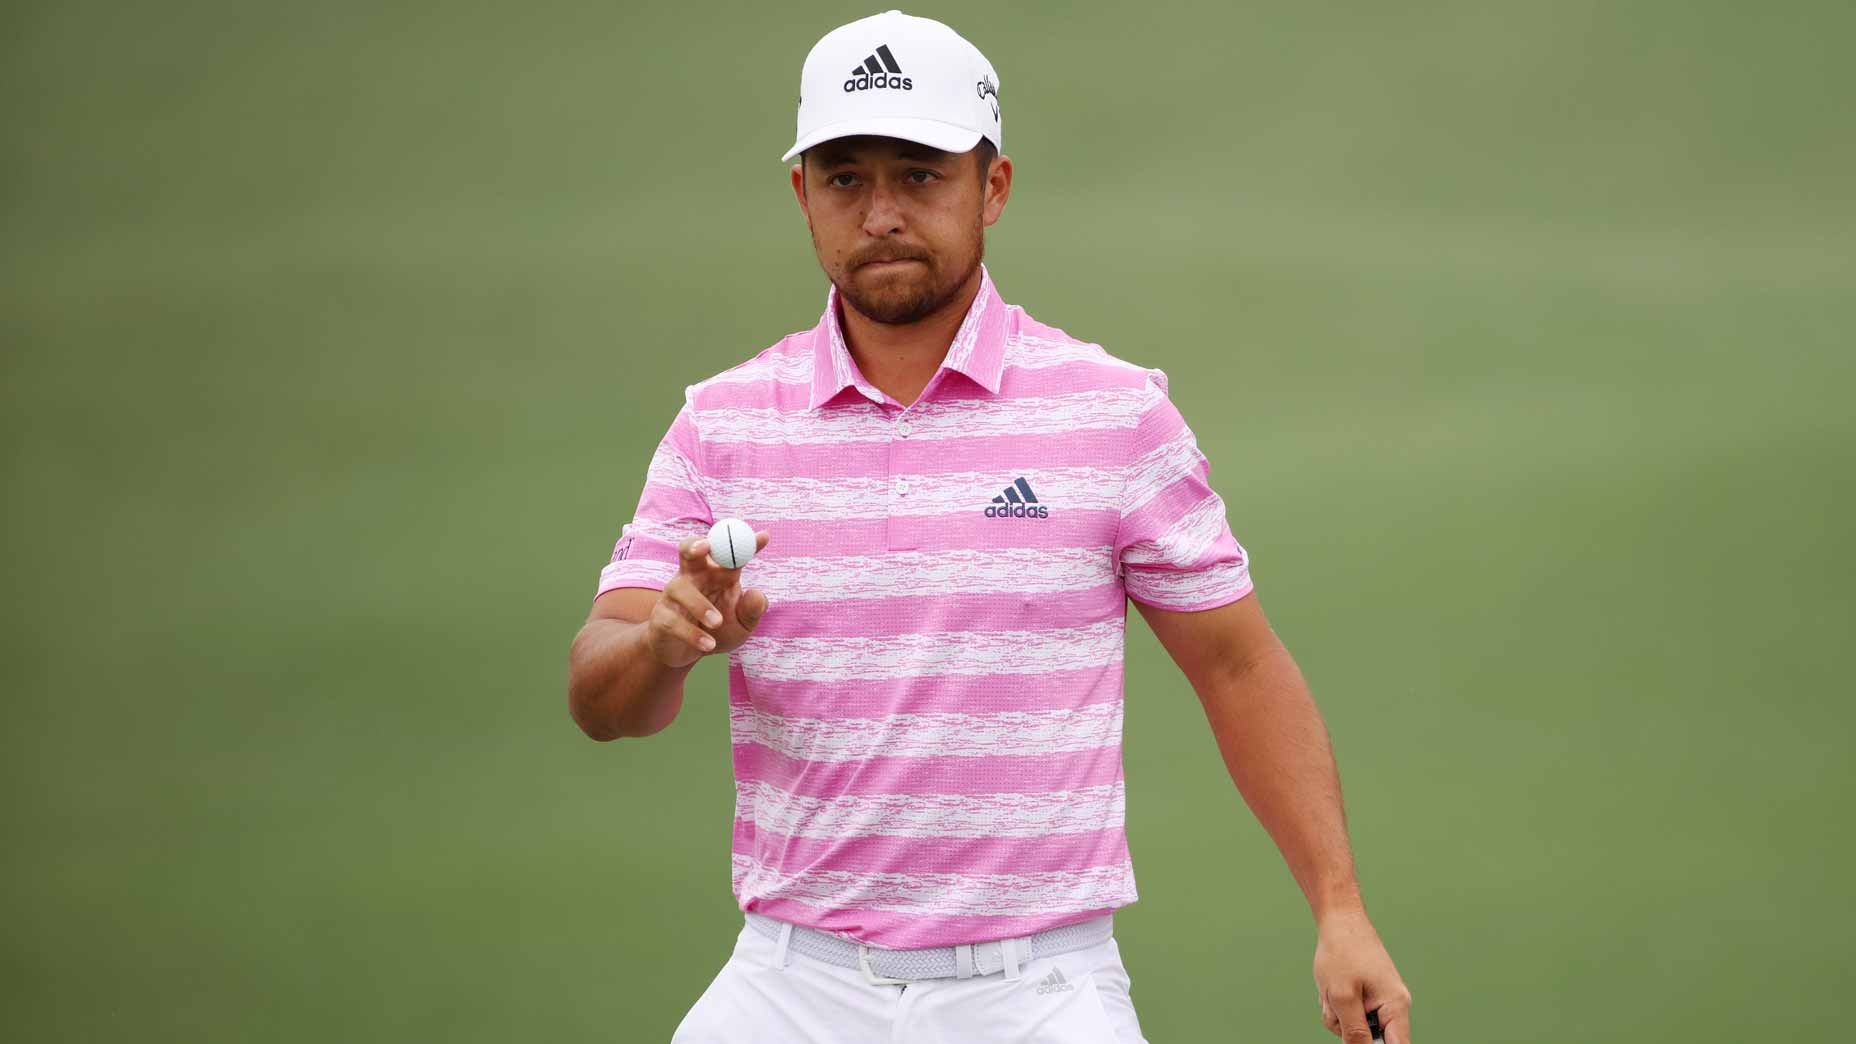 xander schauffele waves